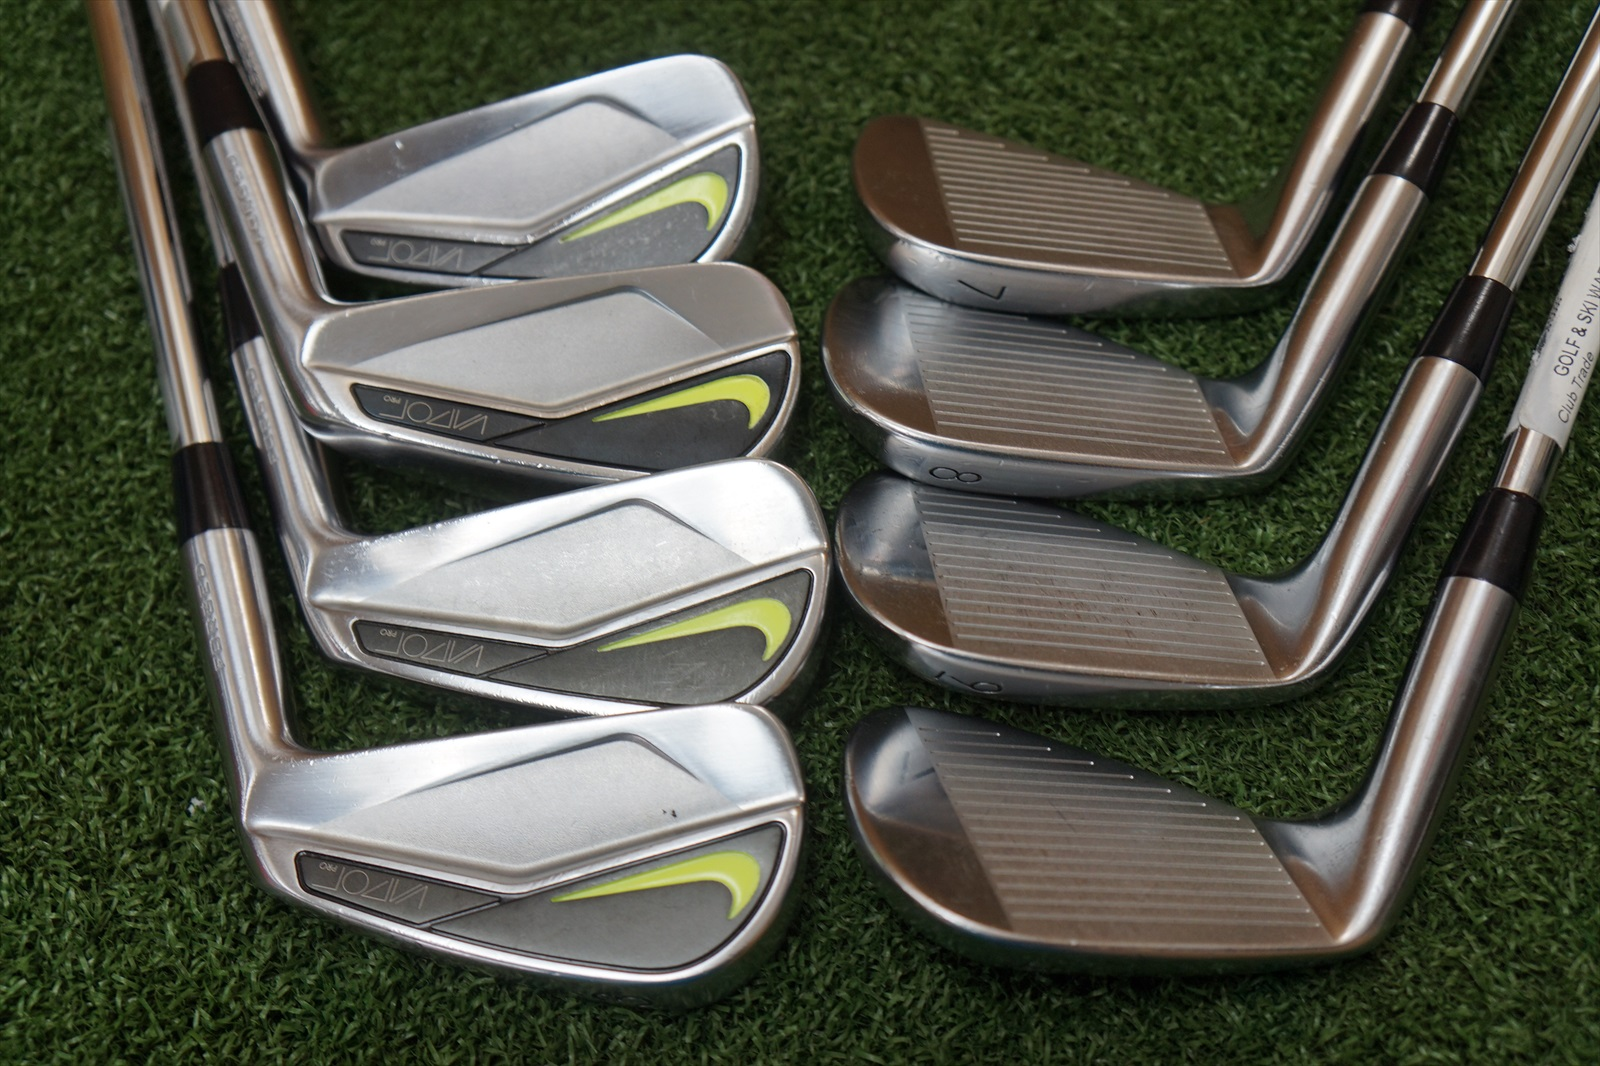 2aac69846b0 We have Used A Stock Image to Represent This Iron Set. Our Team is  Comprised of Experts in Pre-Owned Golf Equipment and do our best to Rate  Clubs with ...